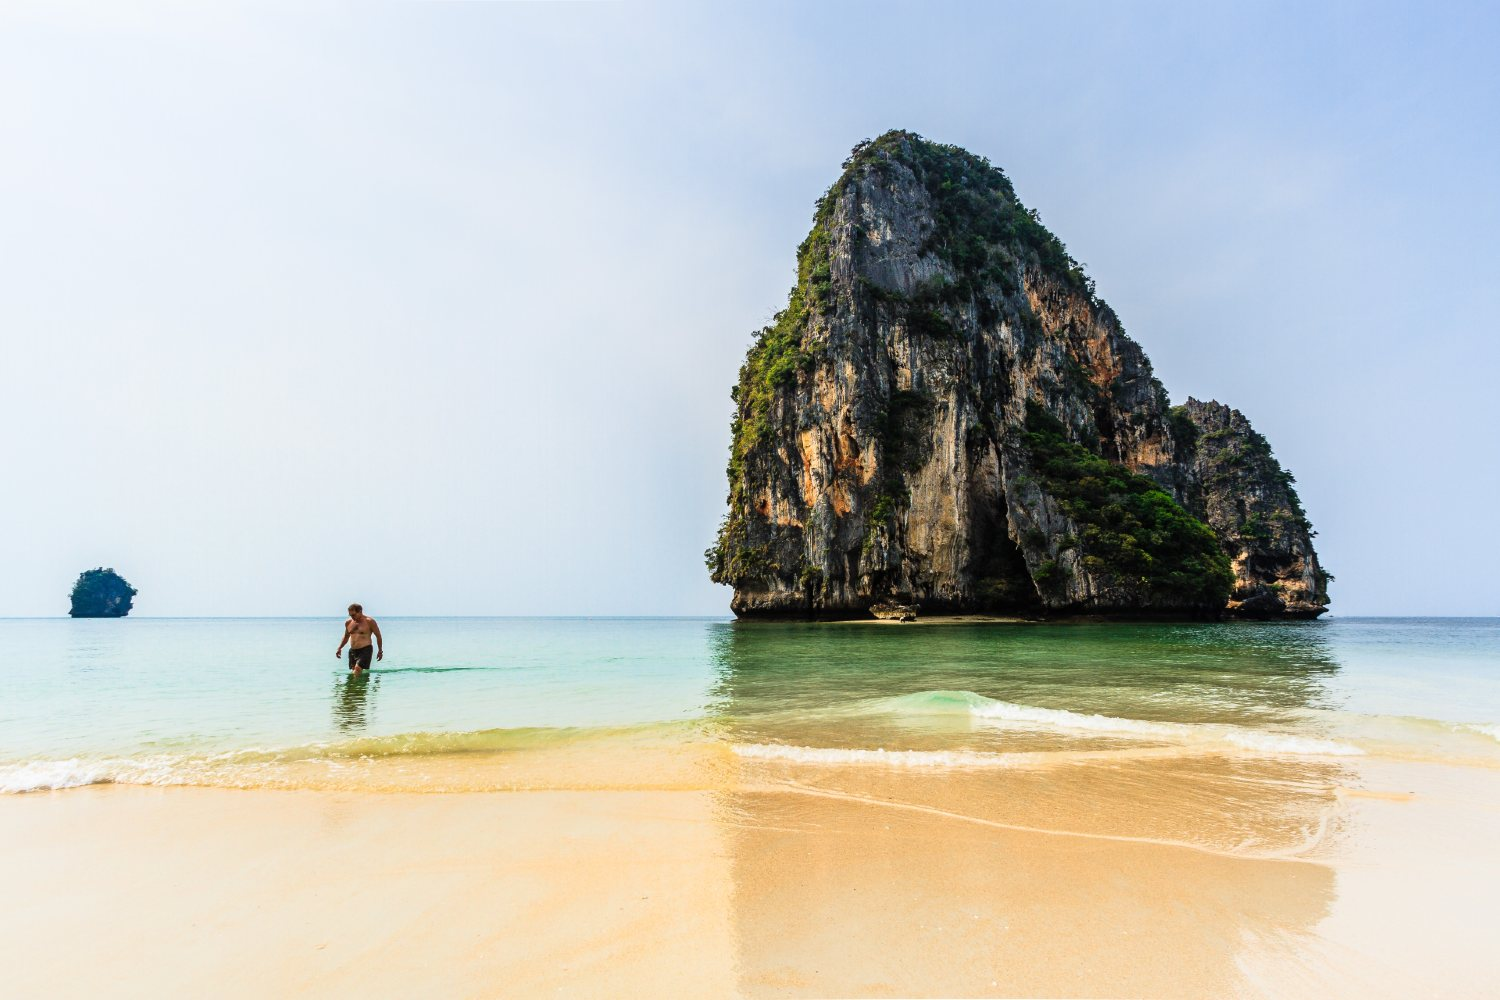 The beach of Phra Nang in Railay with the famous rock